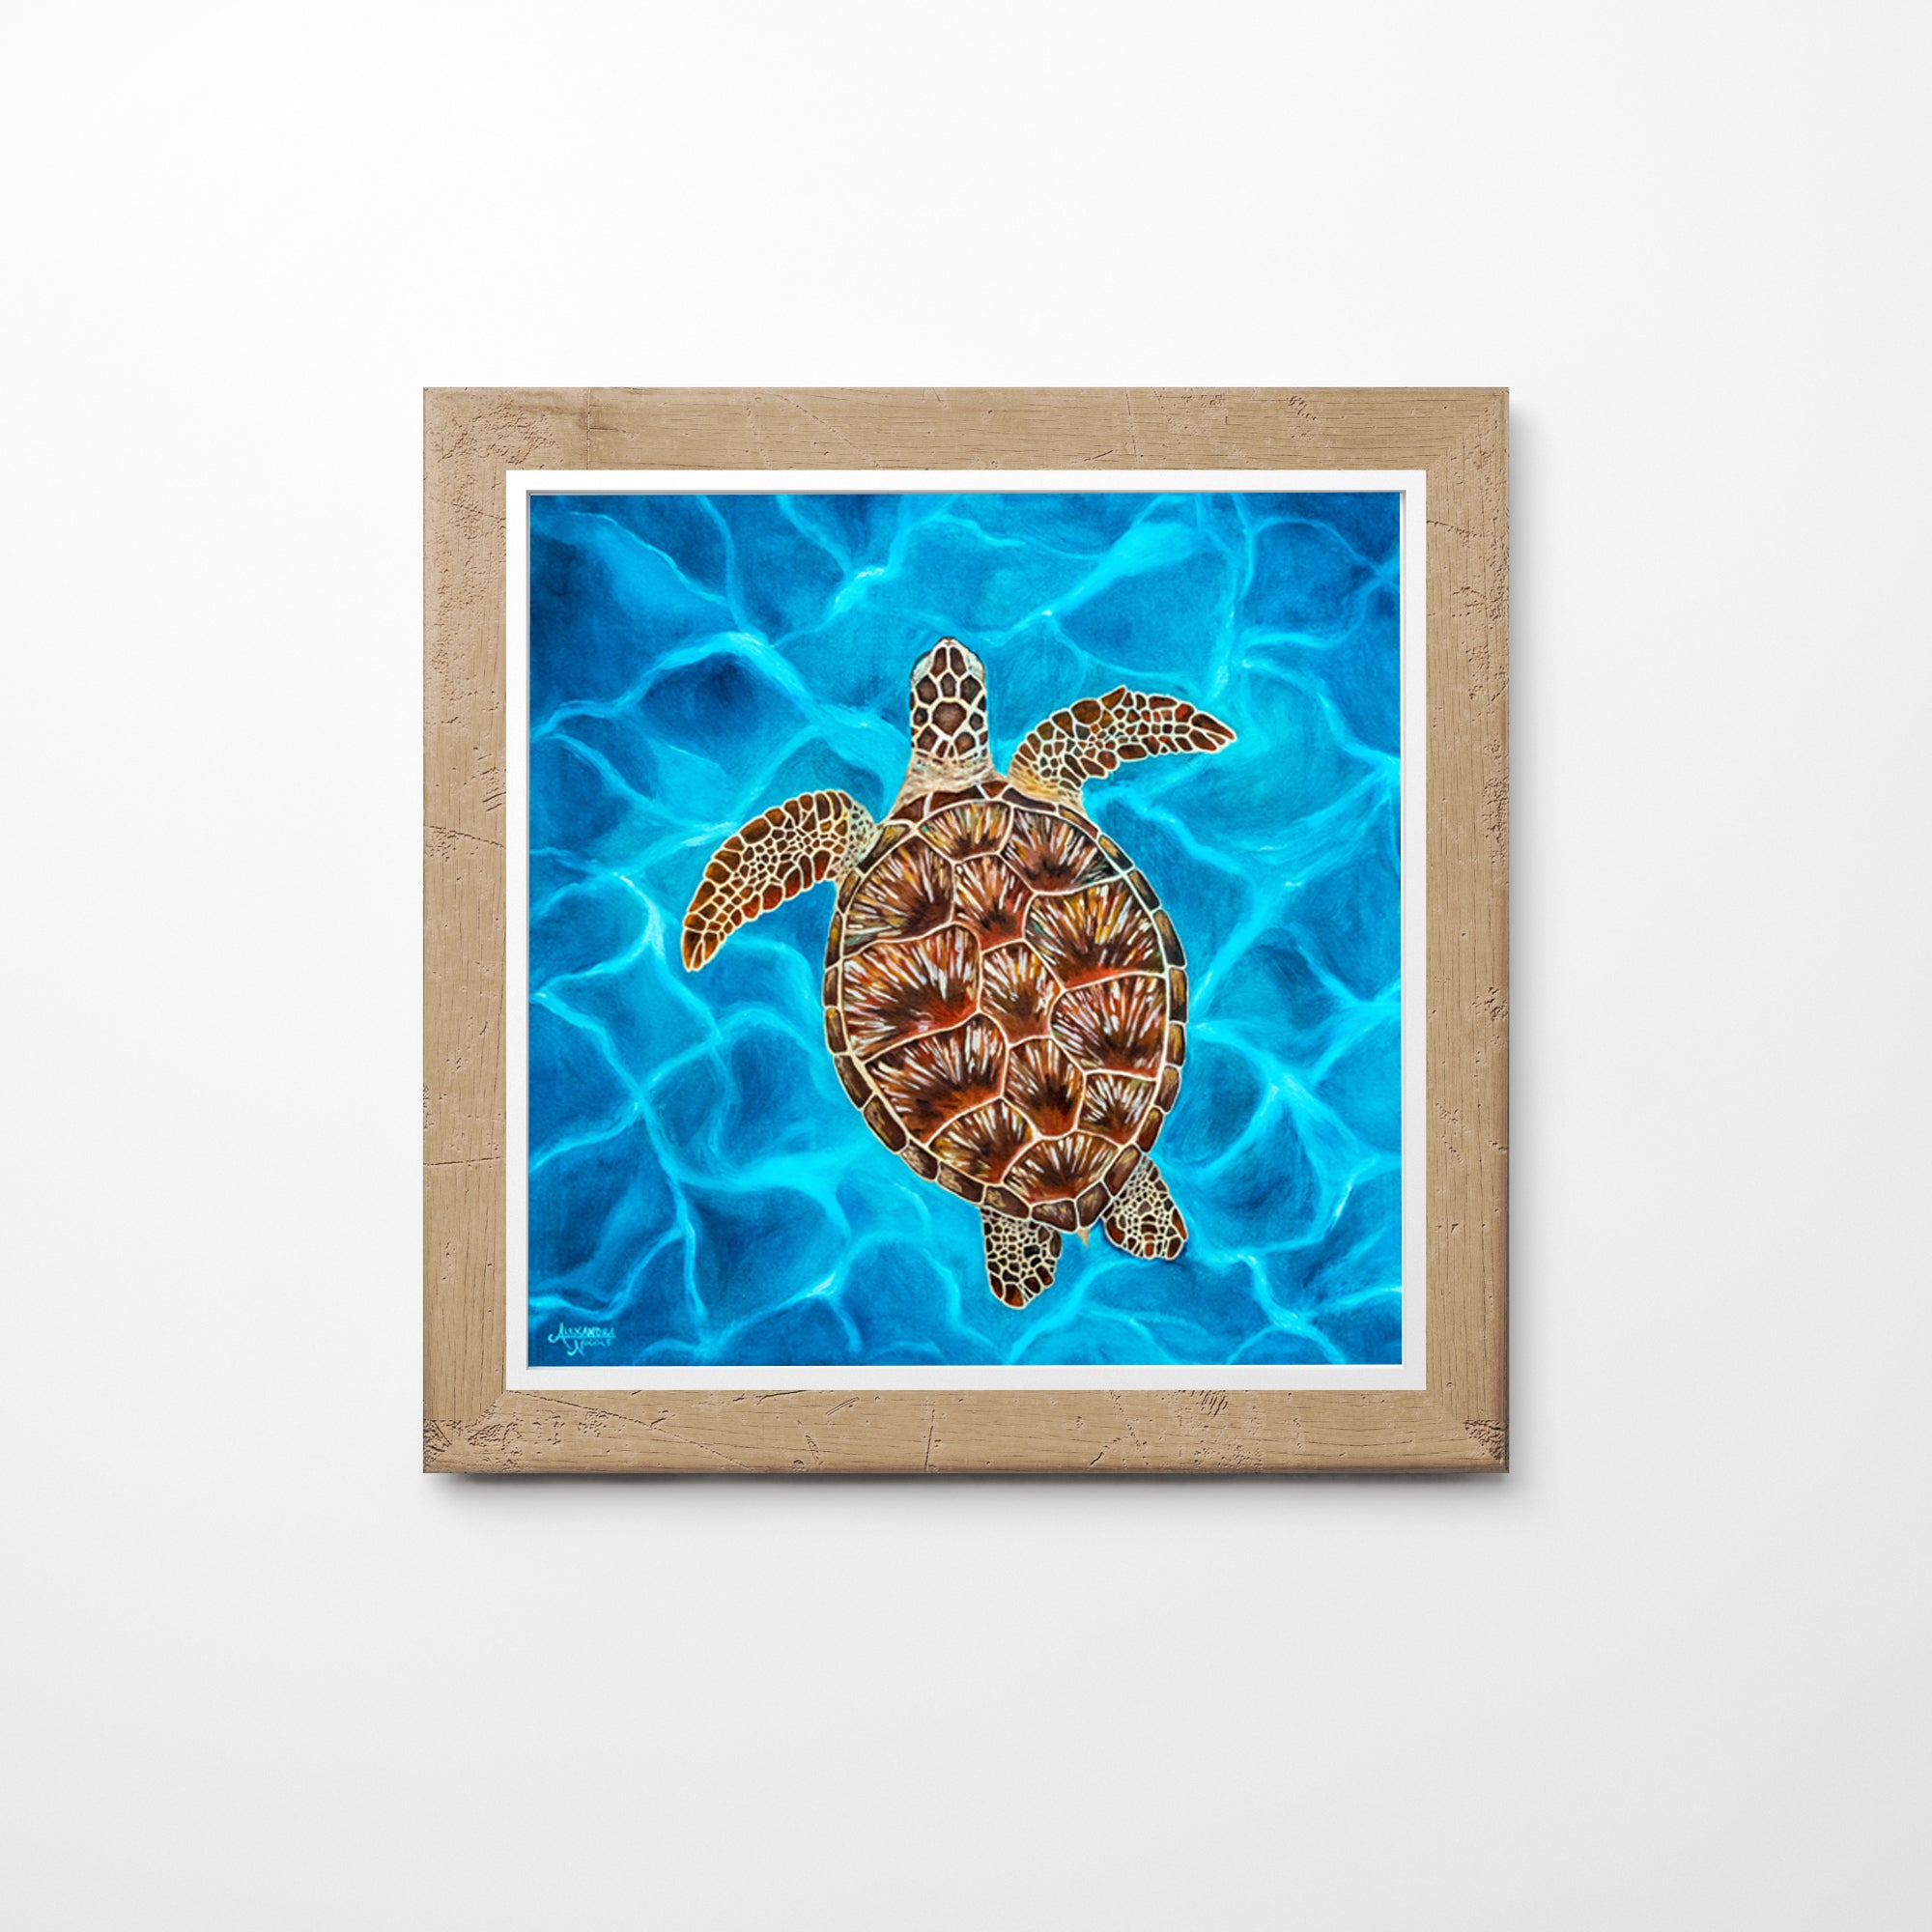 Framed Luna the Sea Turtle Art Print With Blue Water and Brown Turtle